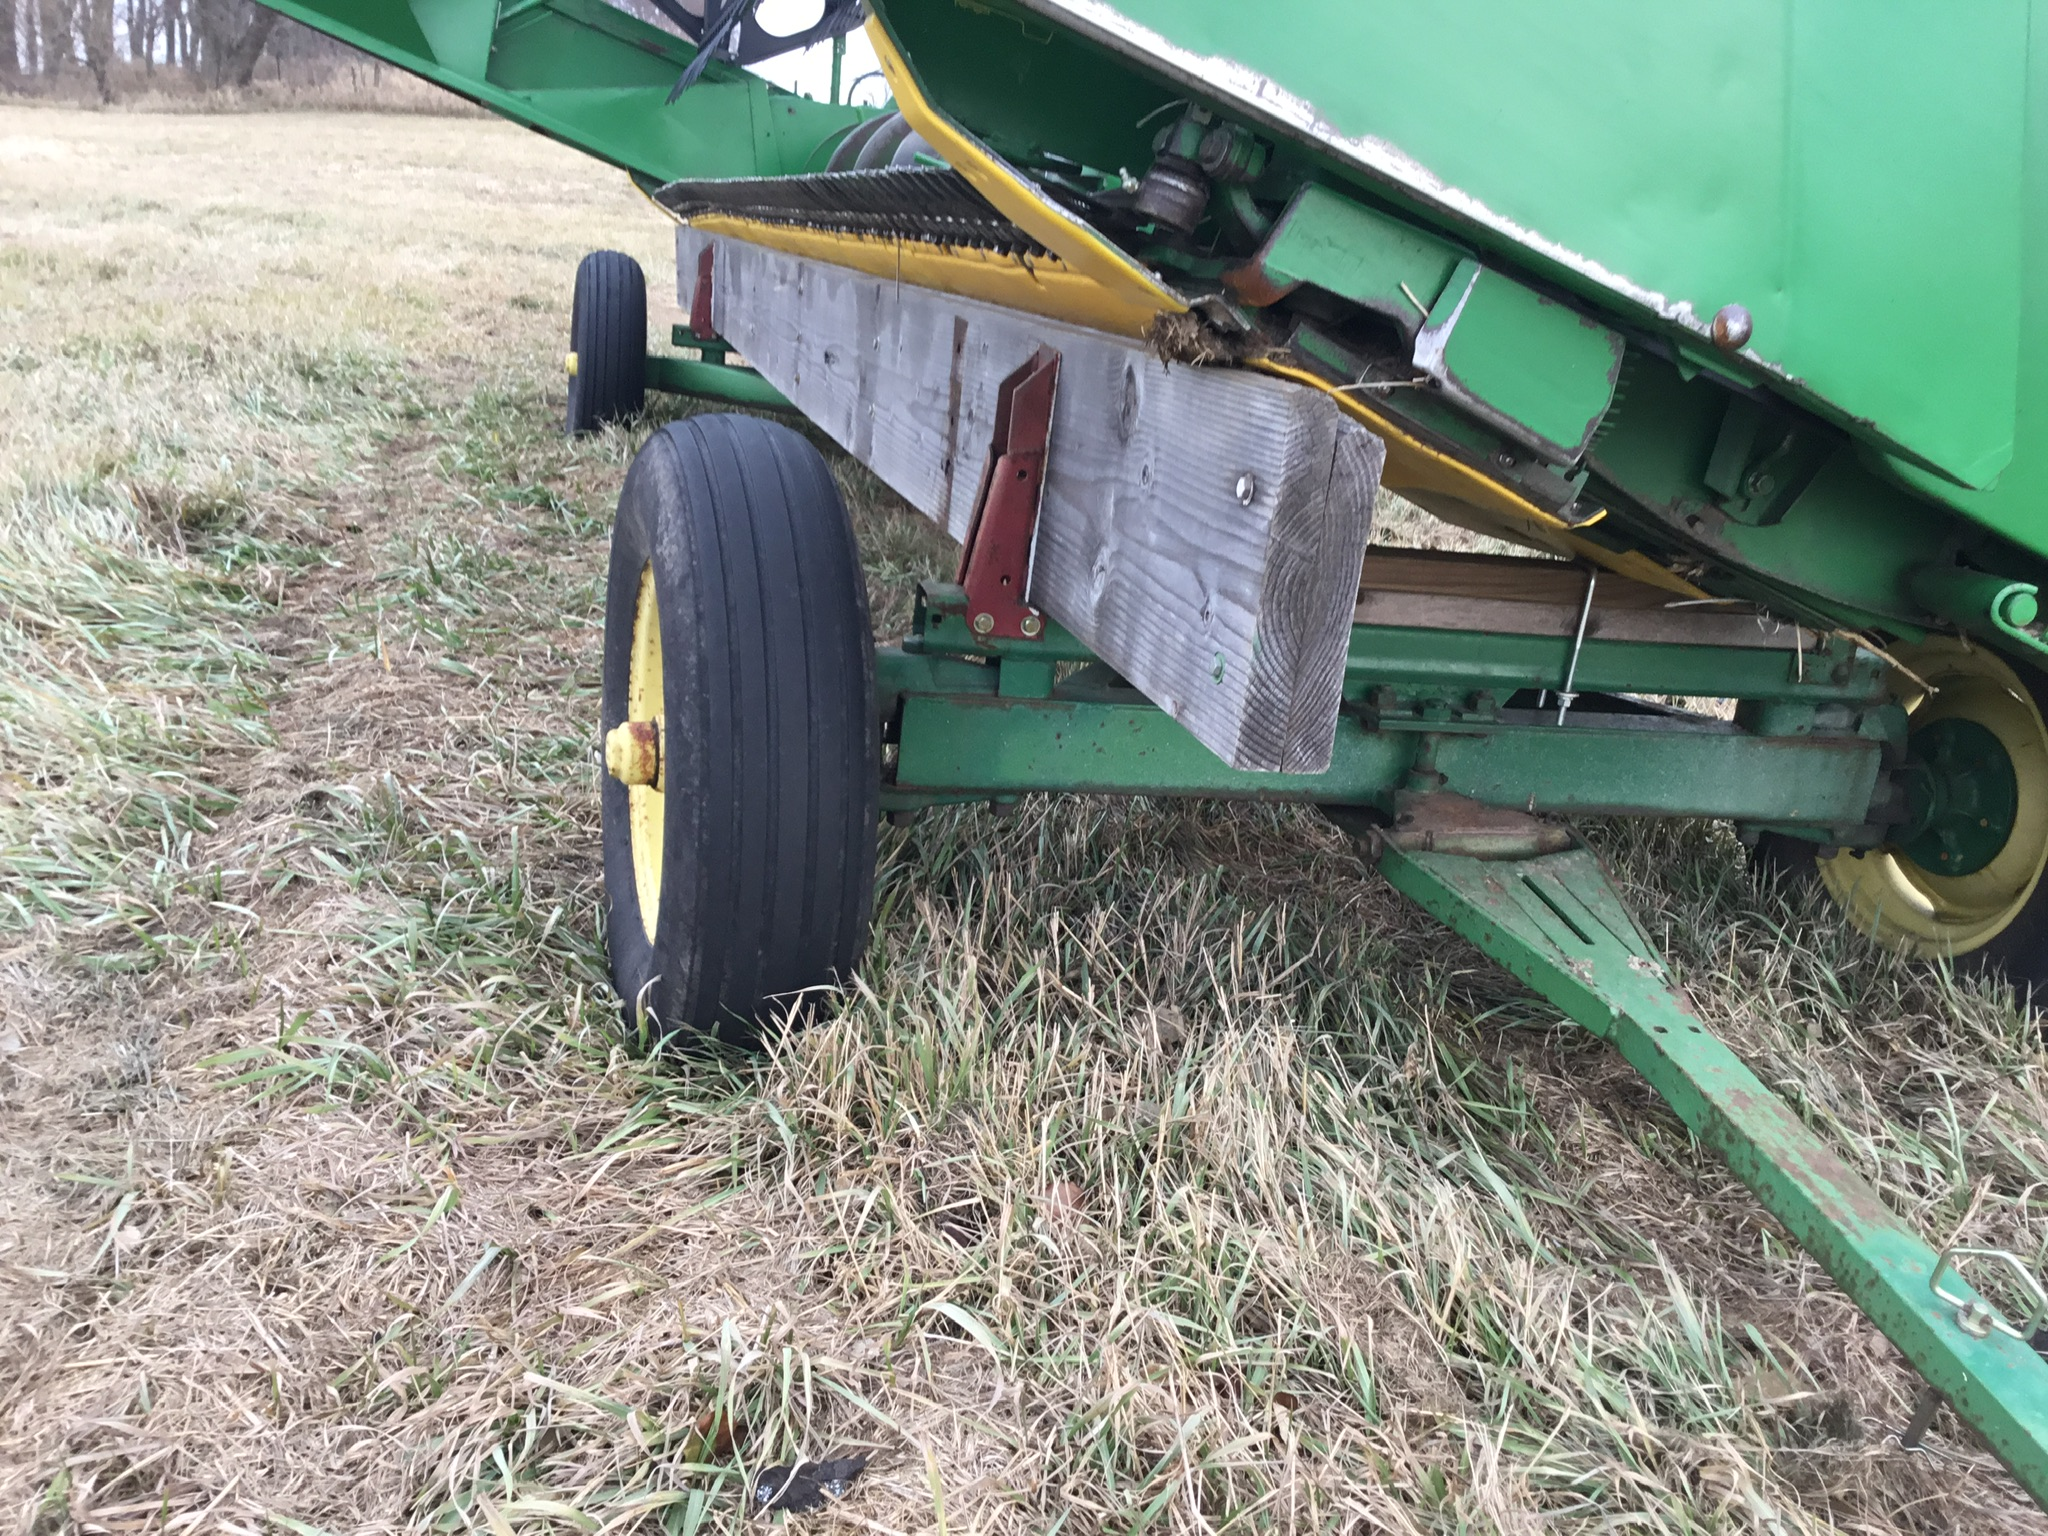 Homemade Head Carrier on JD 963 Gear, 20 Ft. - Image 2 of 3